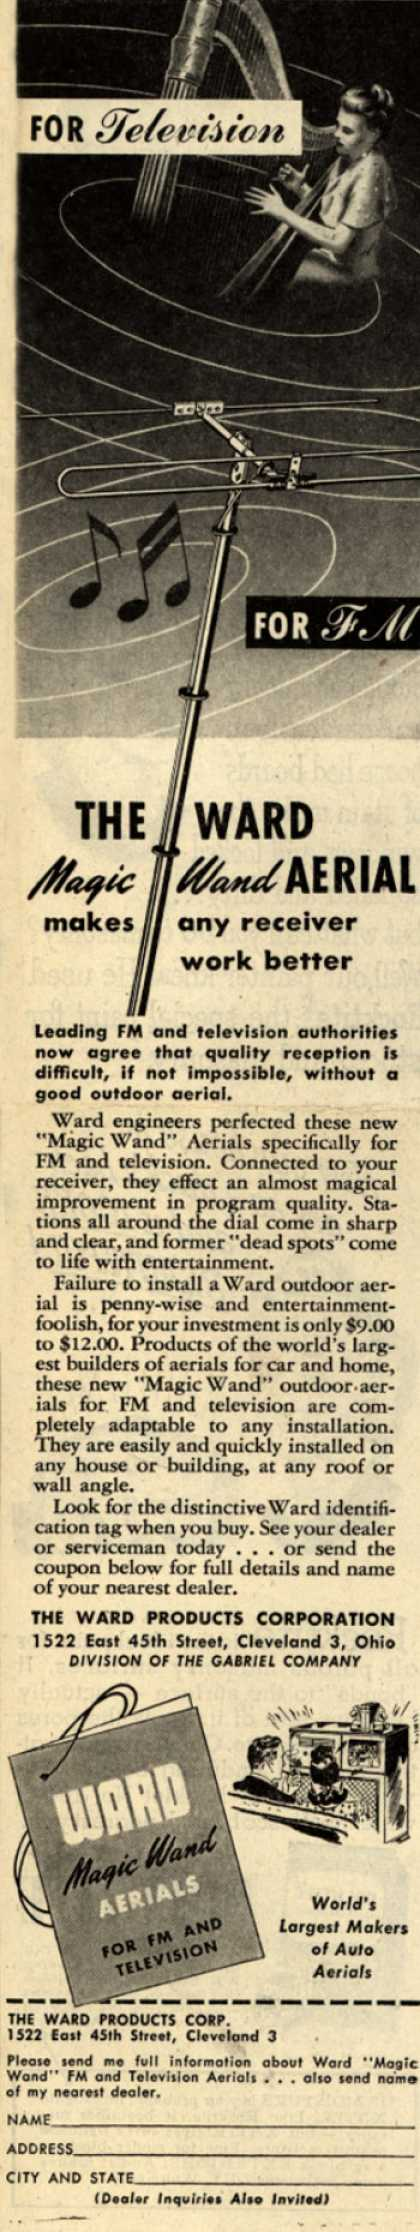 Ward Products Corp.'s Television Aerial – For Television For FM The Ward Magic Wand Aerial (1947)